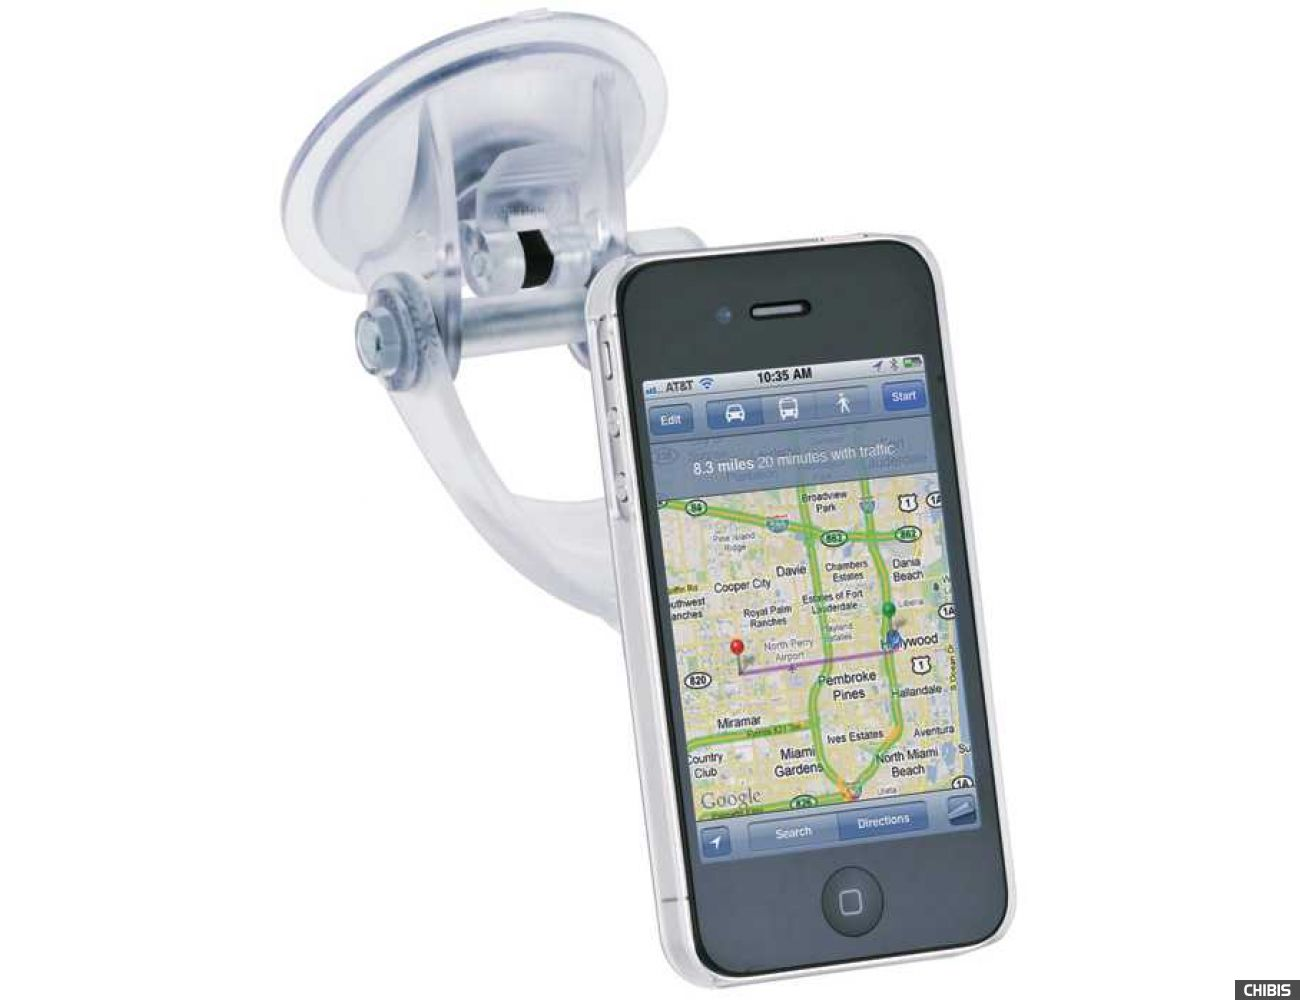 Автодержатель iGrip Clear Case Traveler iPhone 4 (T5-300183)